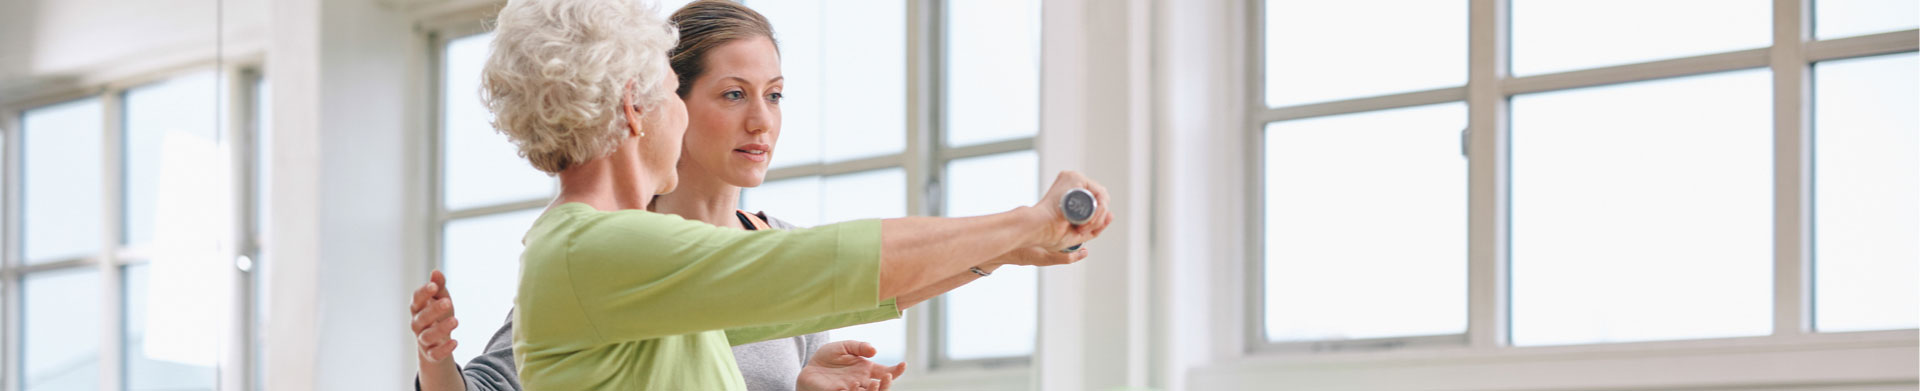 A physical therapist helps a senior woman exercise with weights